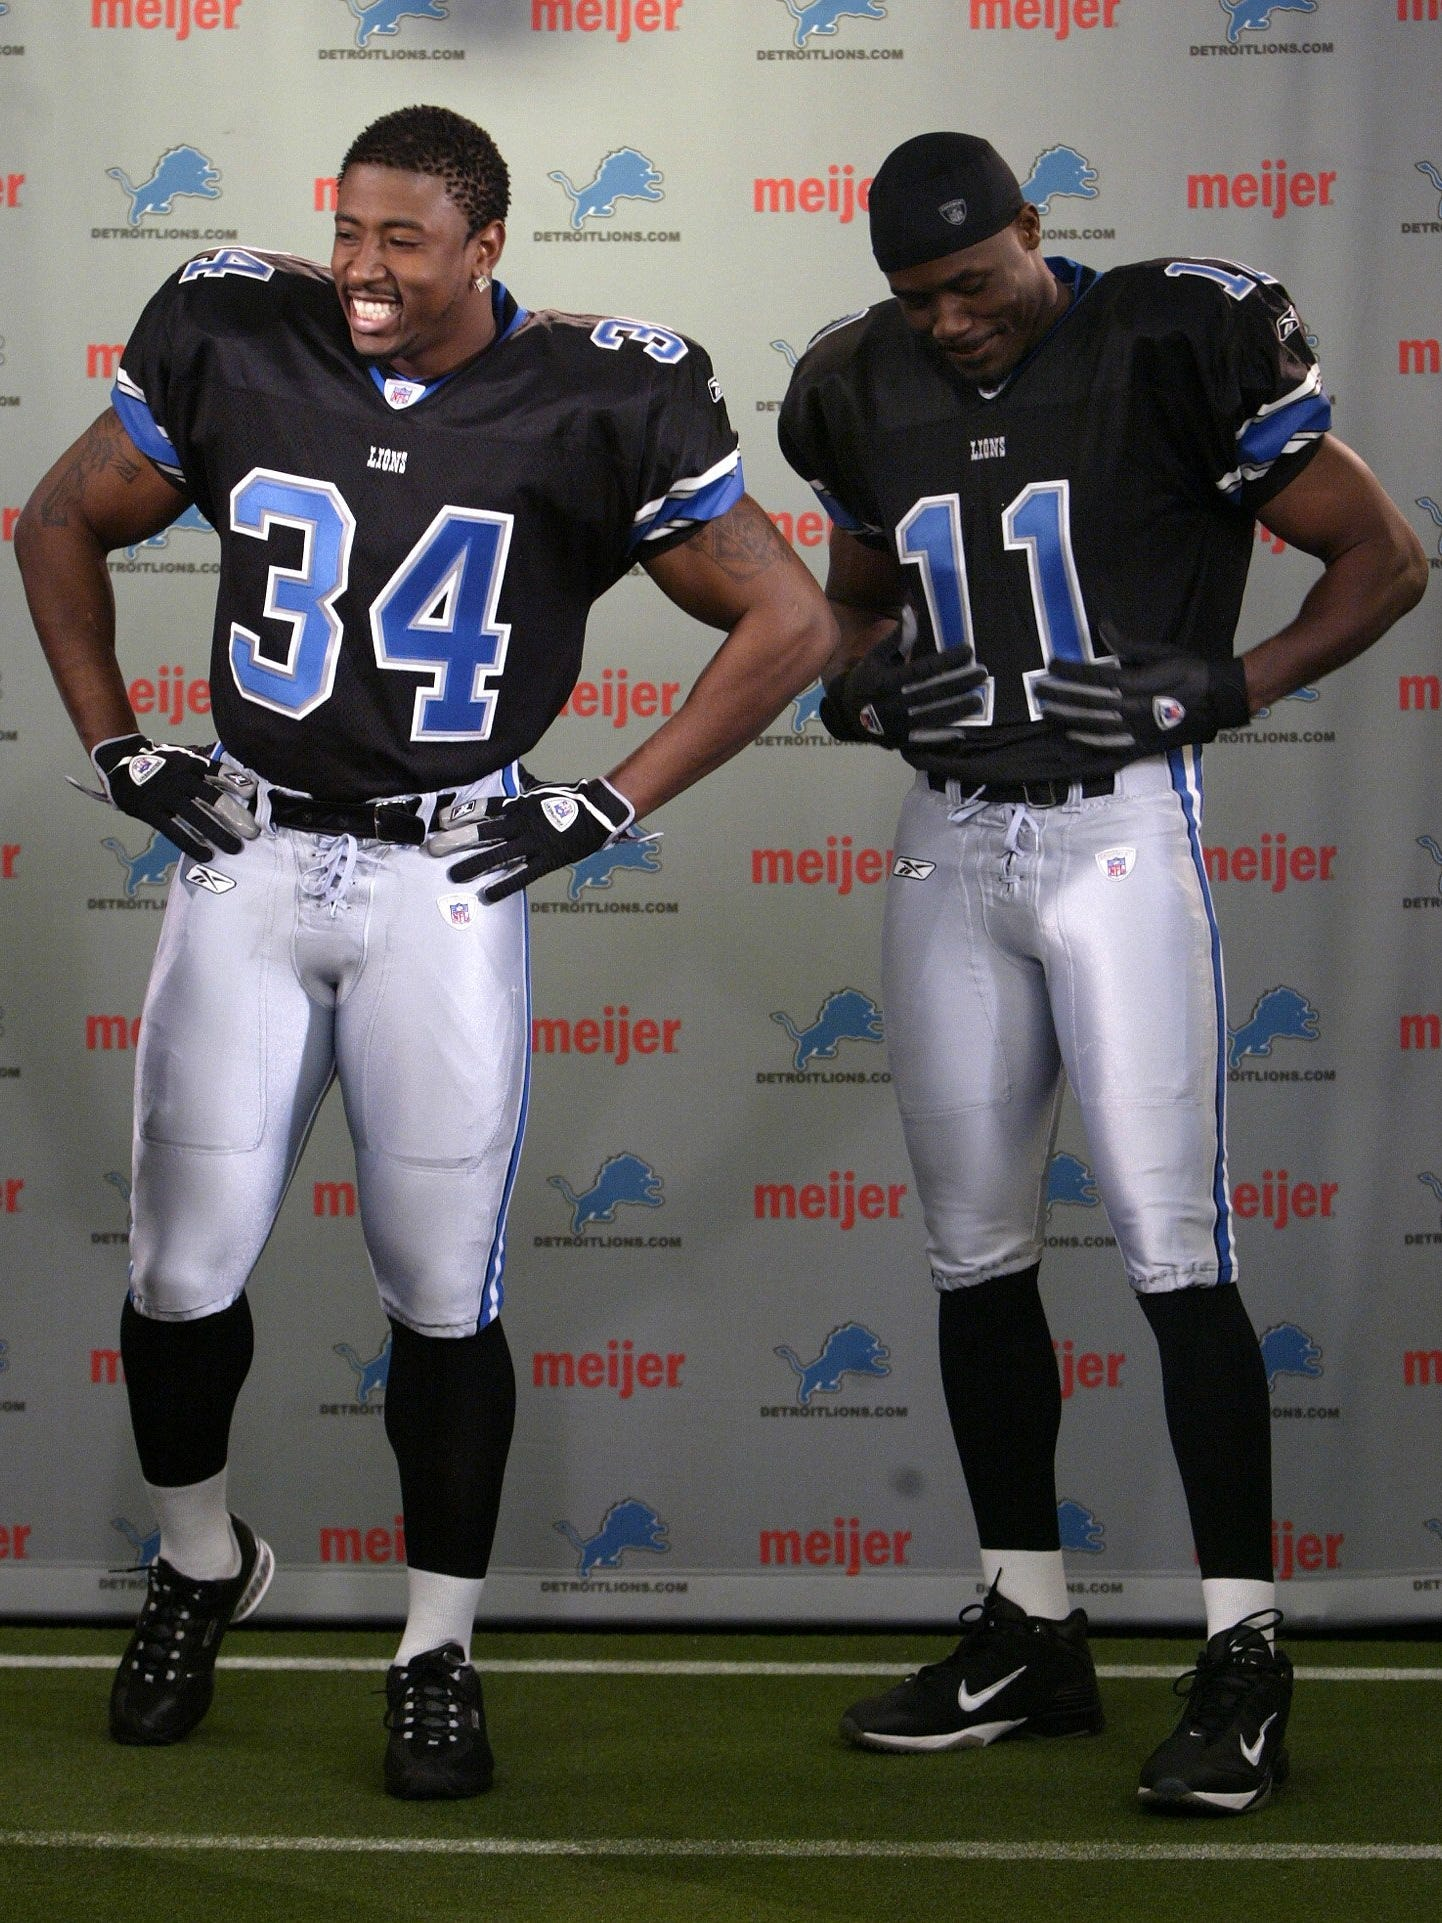 Detroit Lions nearly debuted all-black Color Rush uniforms in 2015